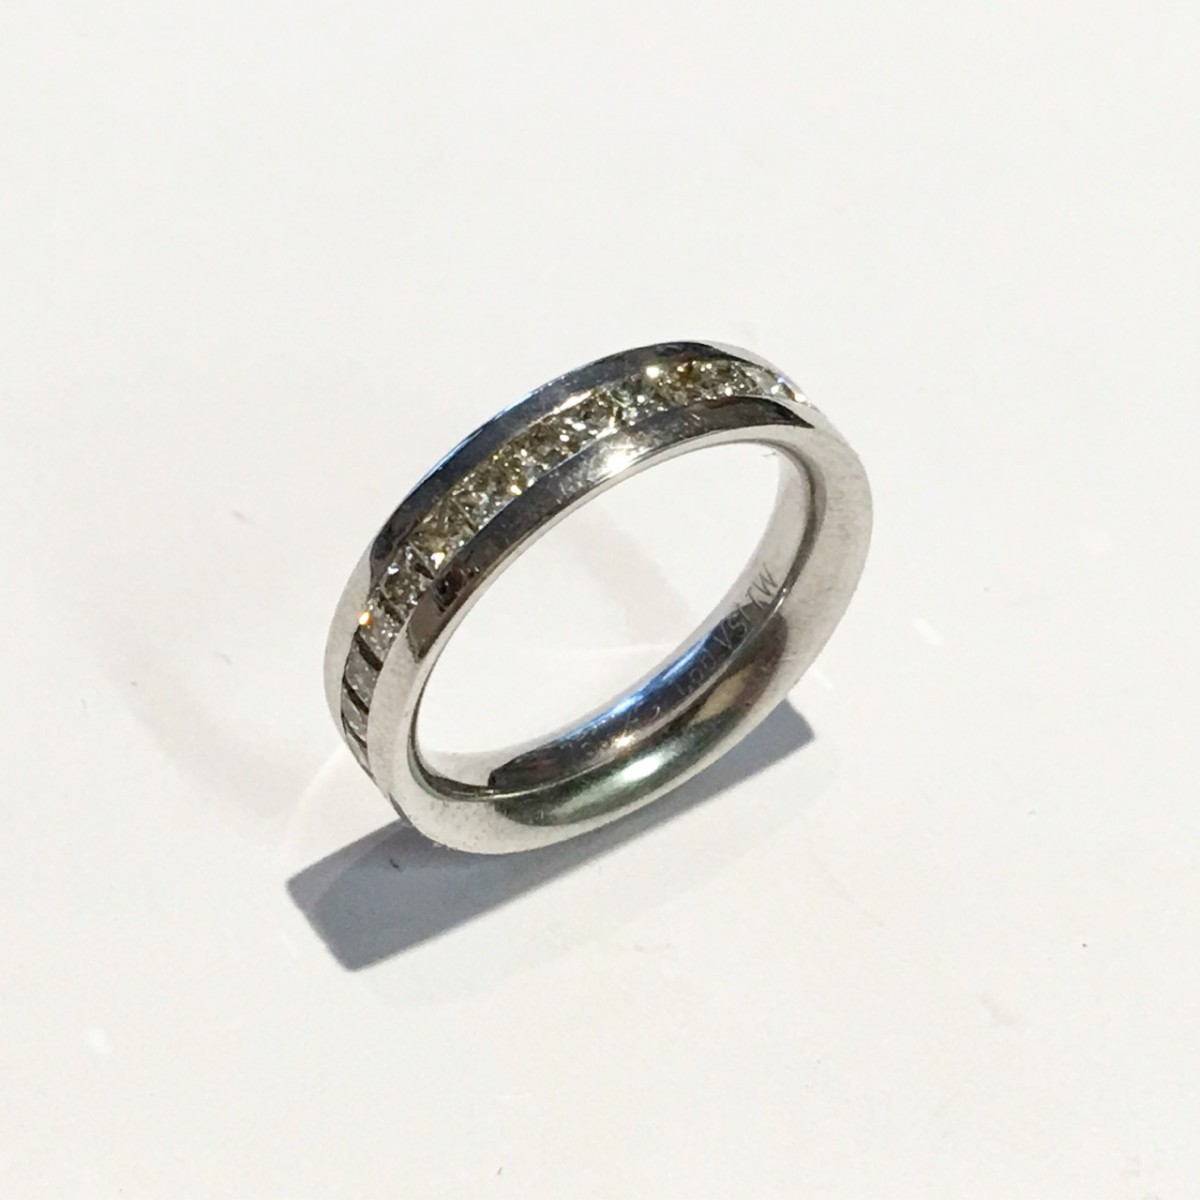 Byers & Co Wedding ring